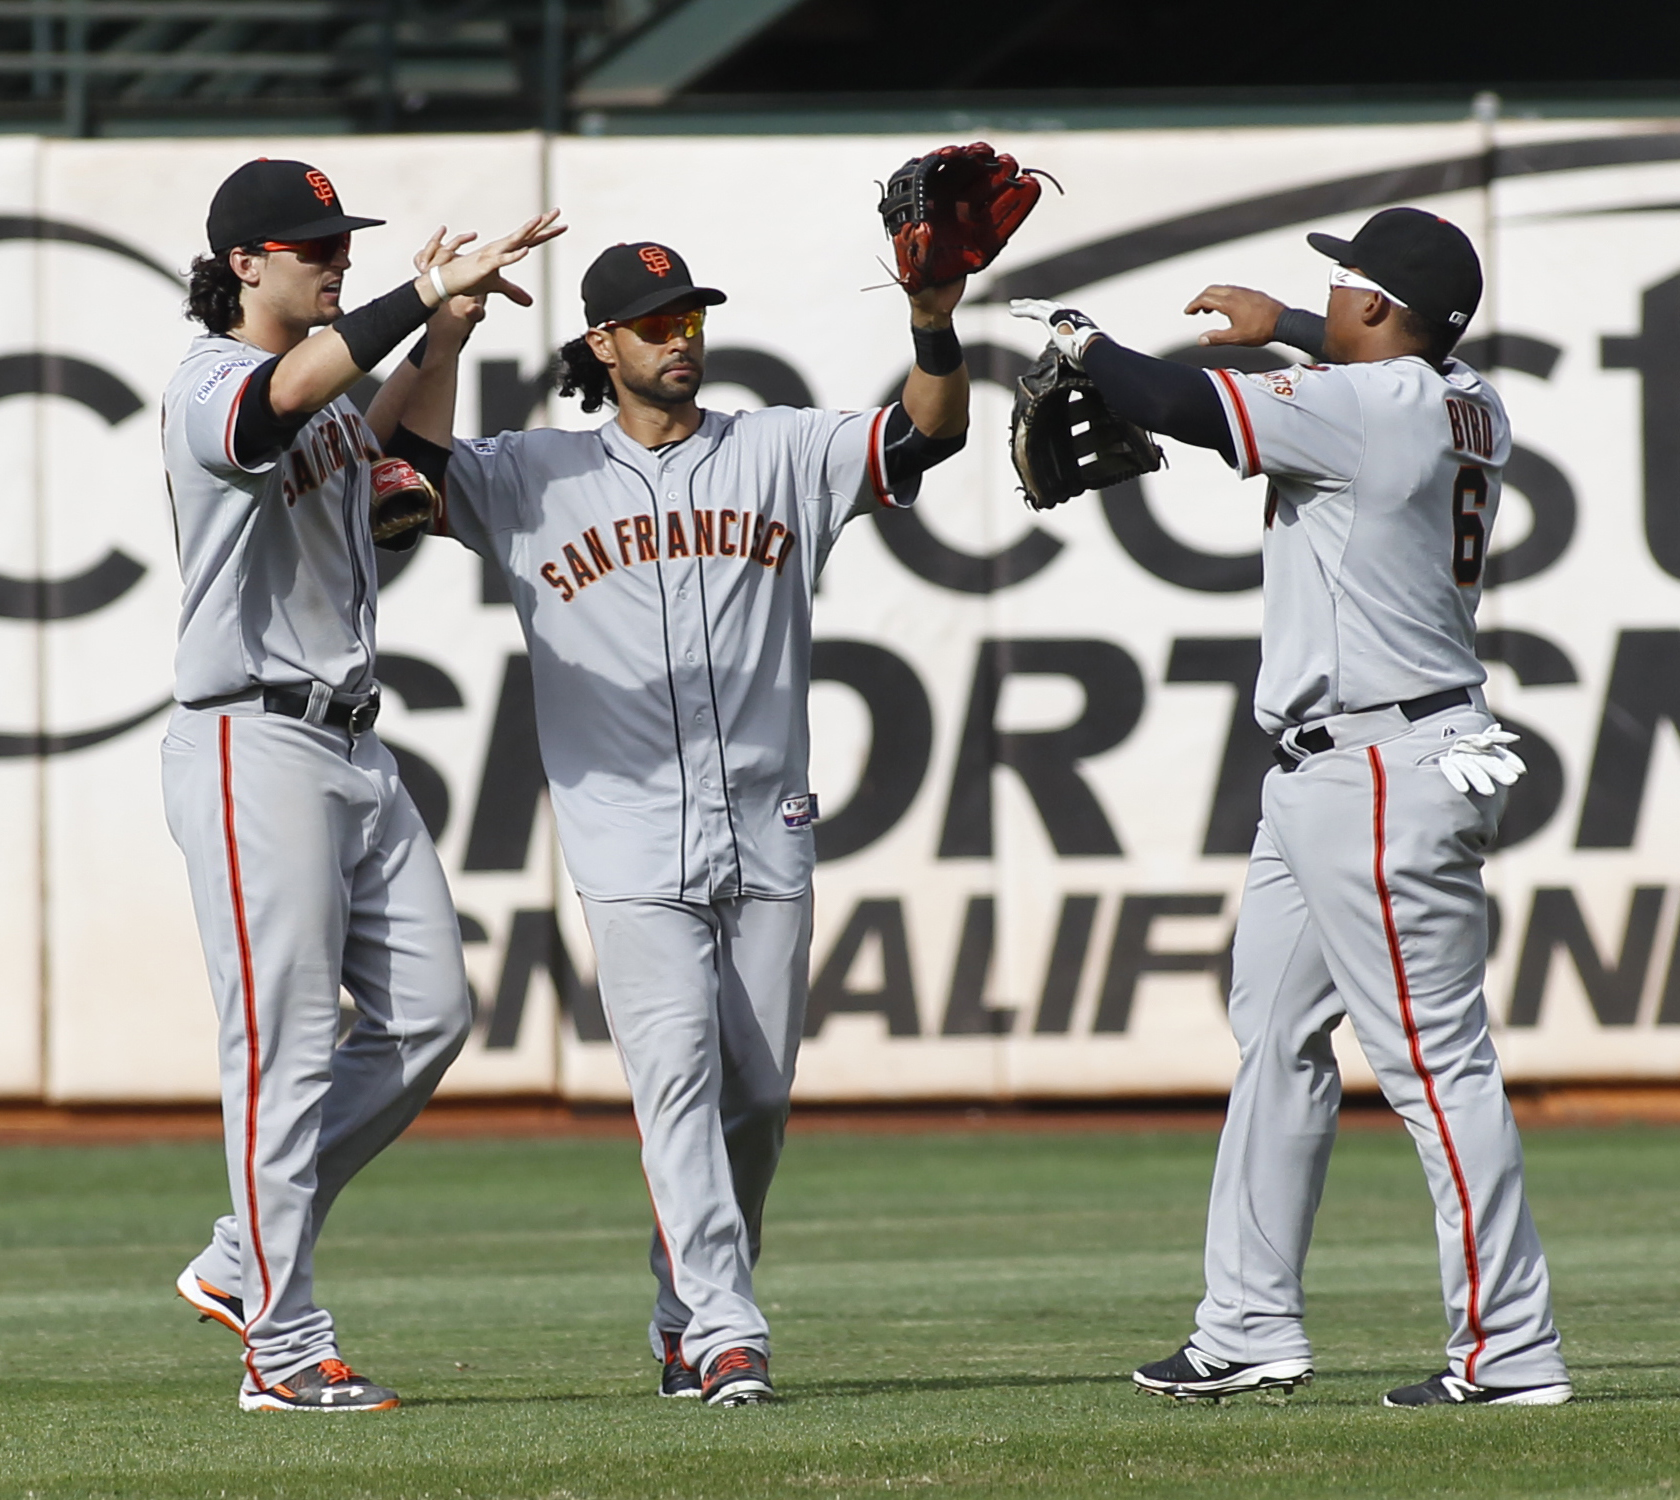 San Francisco Giants' Jarrett Parker, left,  Angel Pagan, center, and Marlon Byrd celebrate after the Giants defeated the Oakland Athletics 5-4 in a baseball game, Sunday, Sept. 27, 2015, in Oakland, Calif. (AP Photo/George Nikitin)